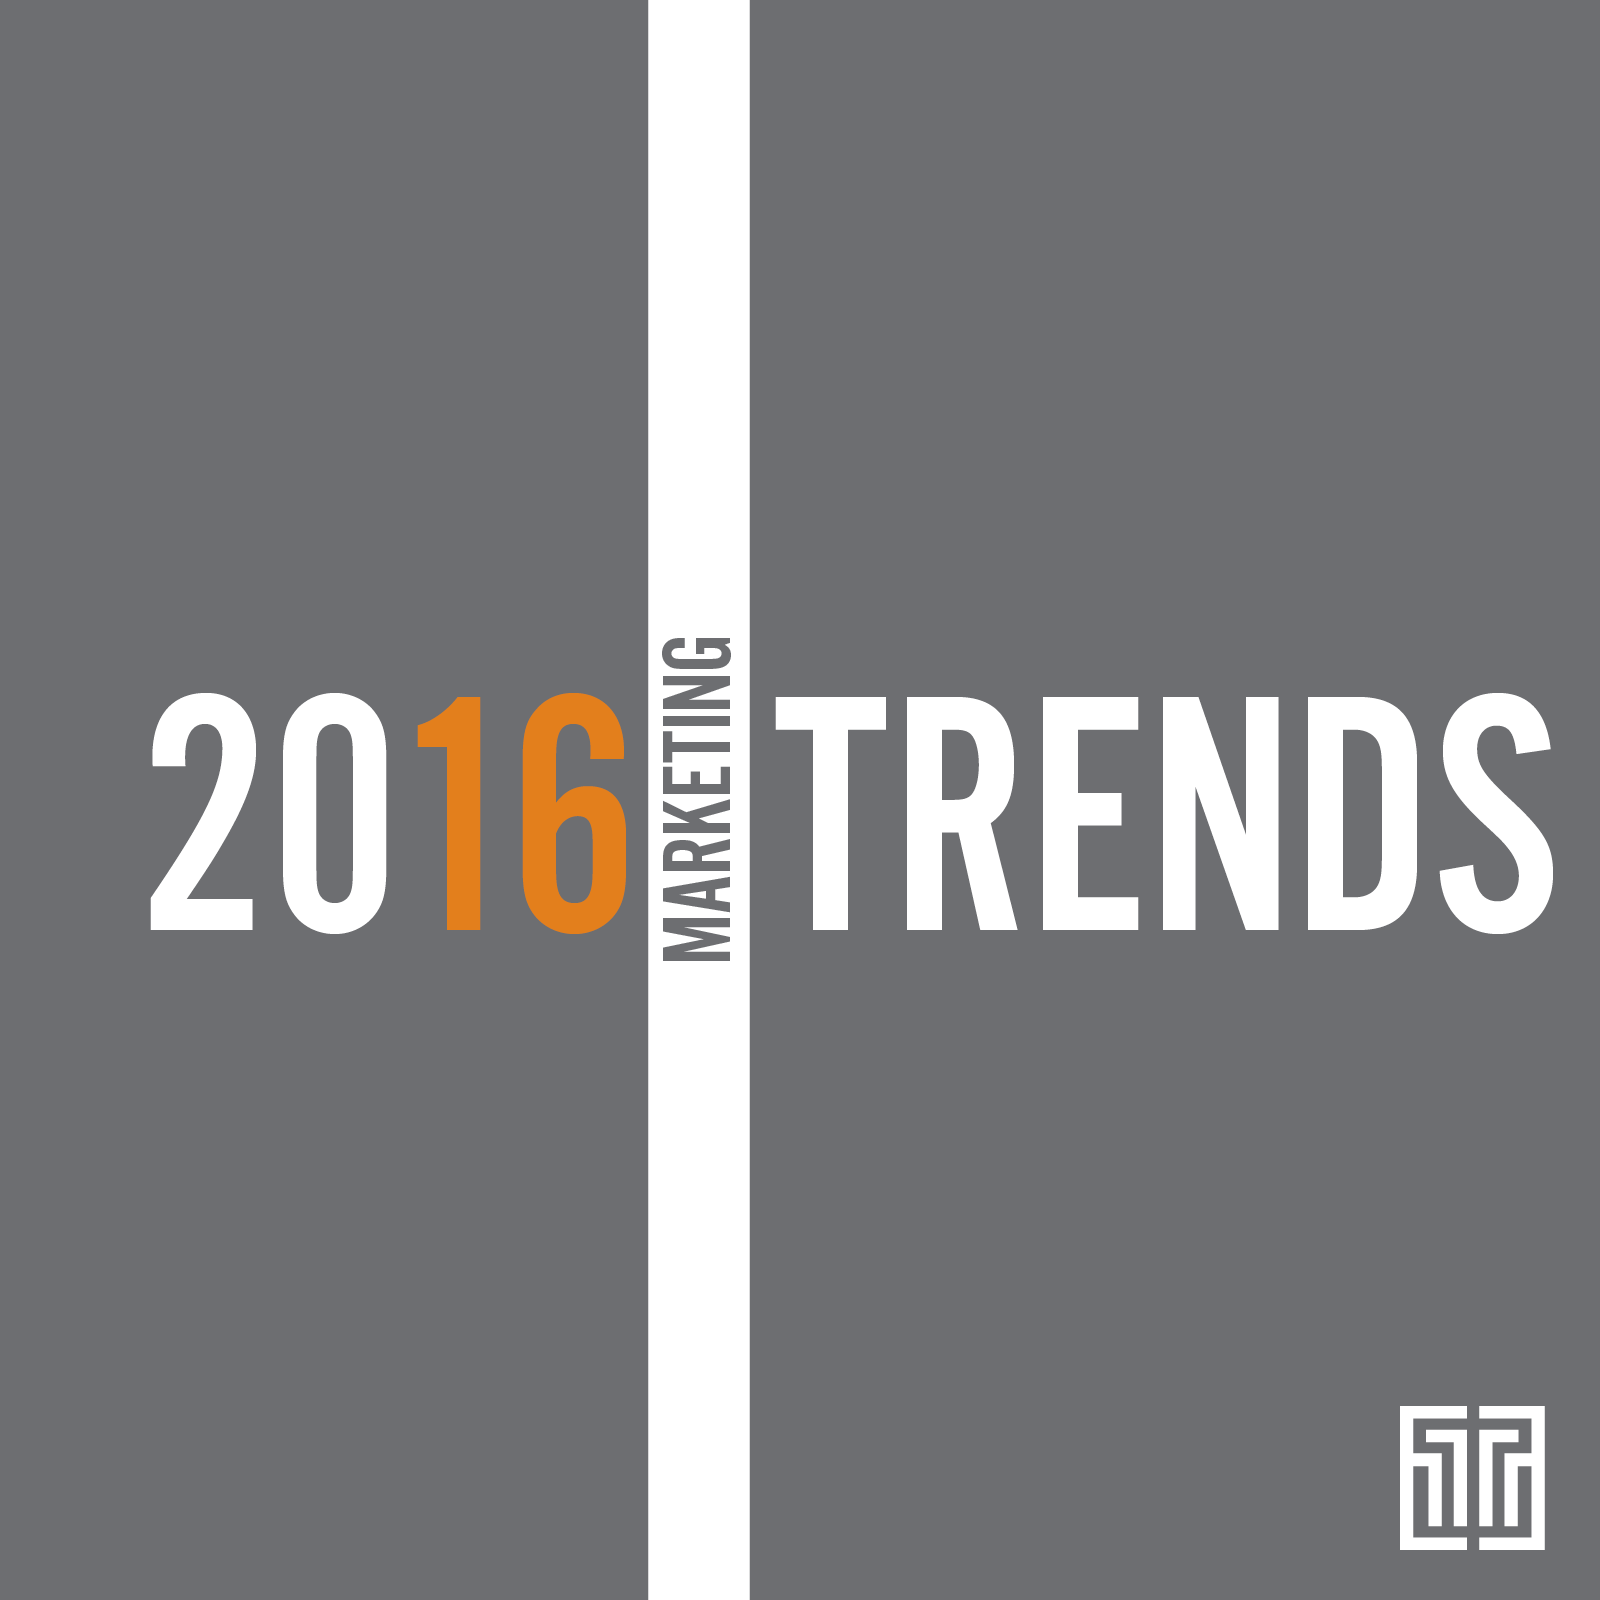 16 Marketing Trends for 2016: Trends 1-4